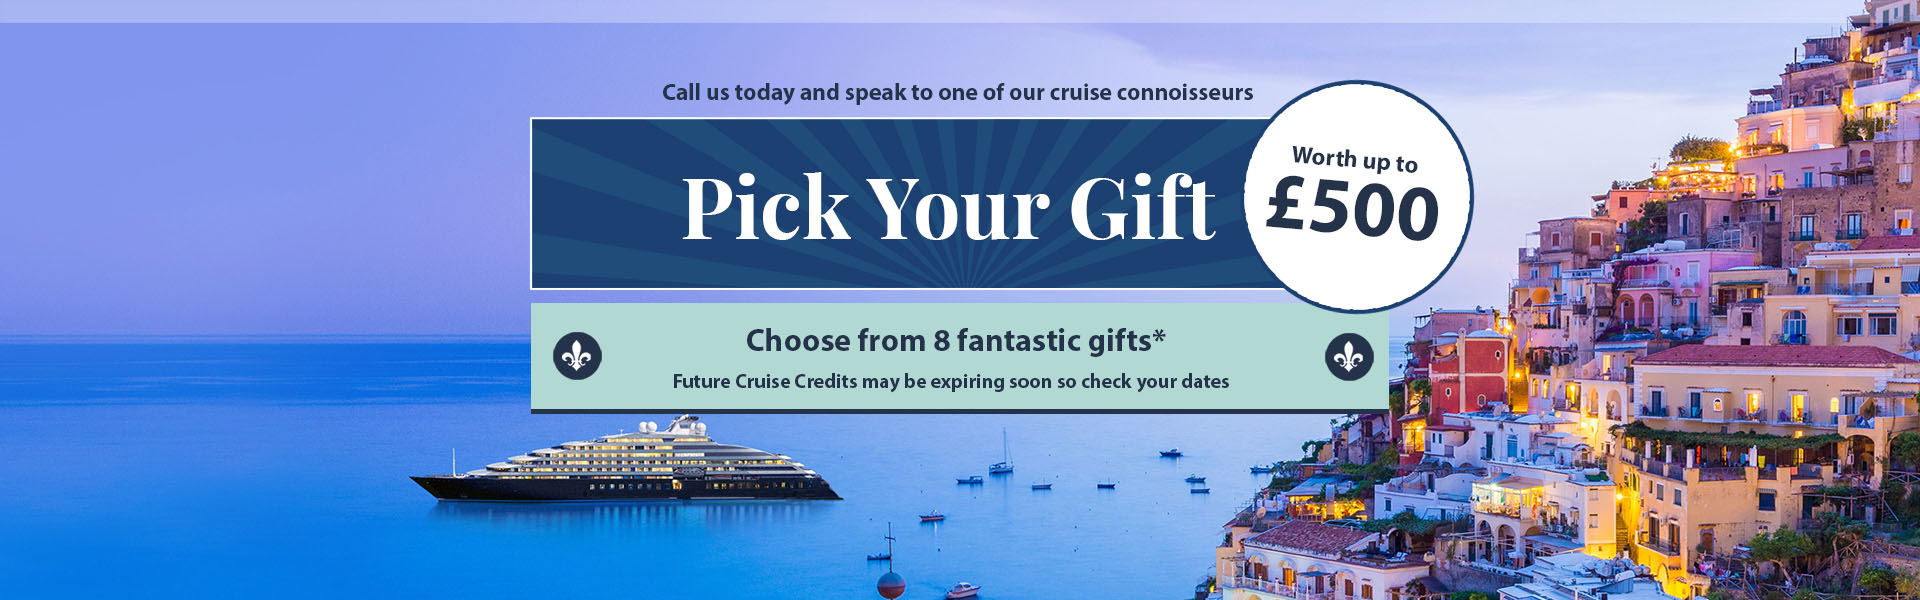 Panache Cruises, Elite Ocean, River, Expedition and Yacht-Style Cruising